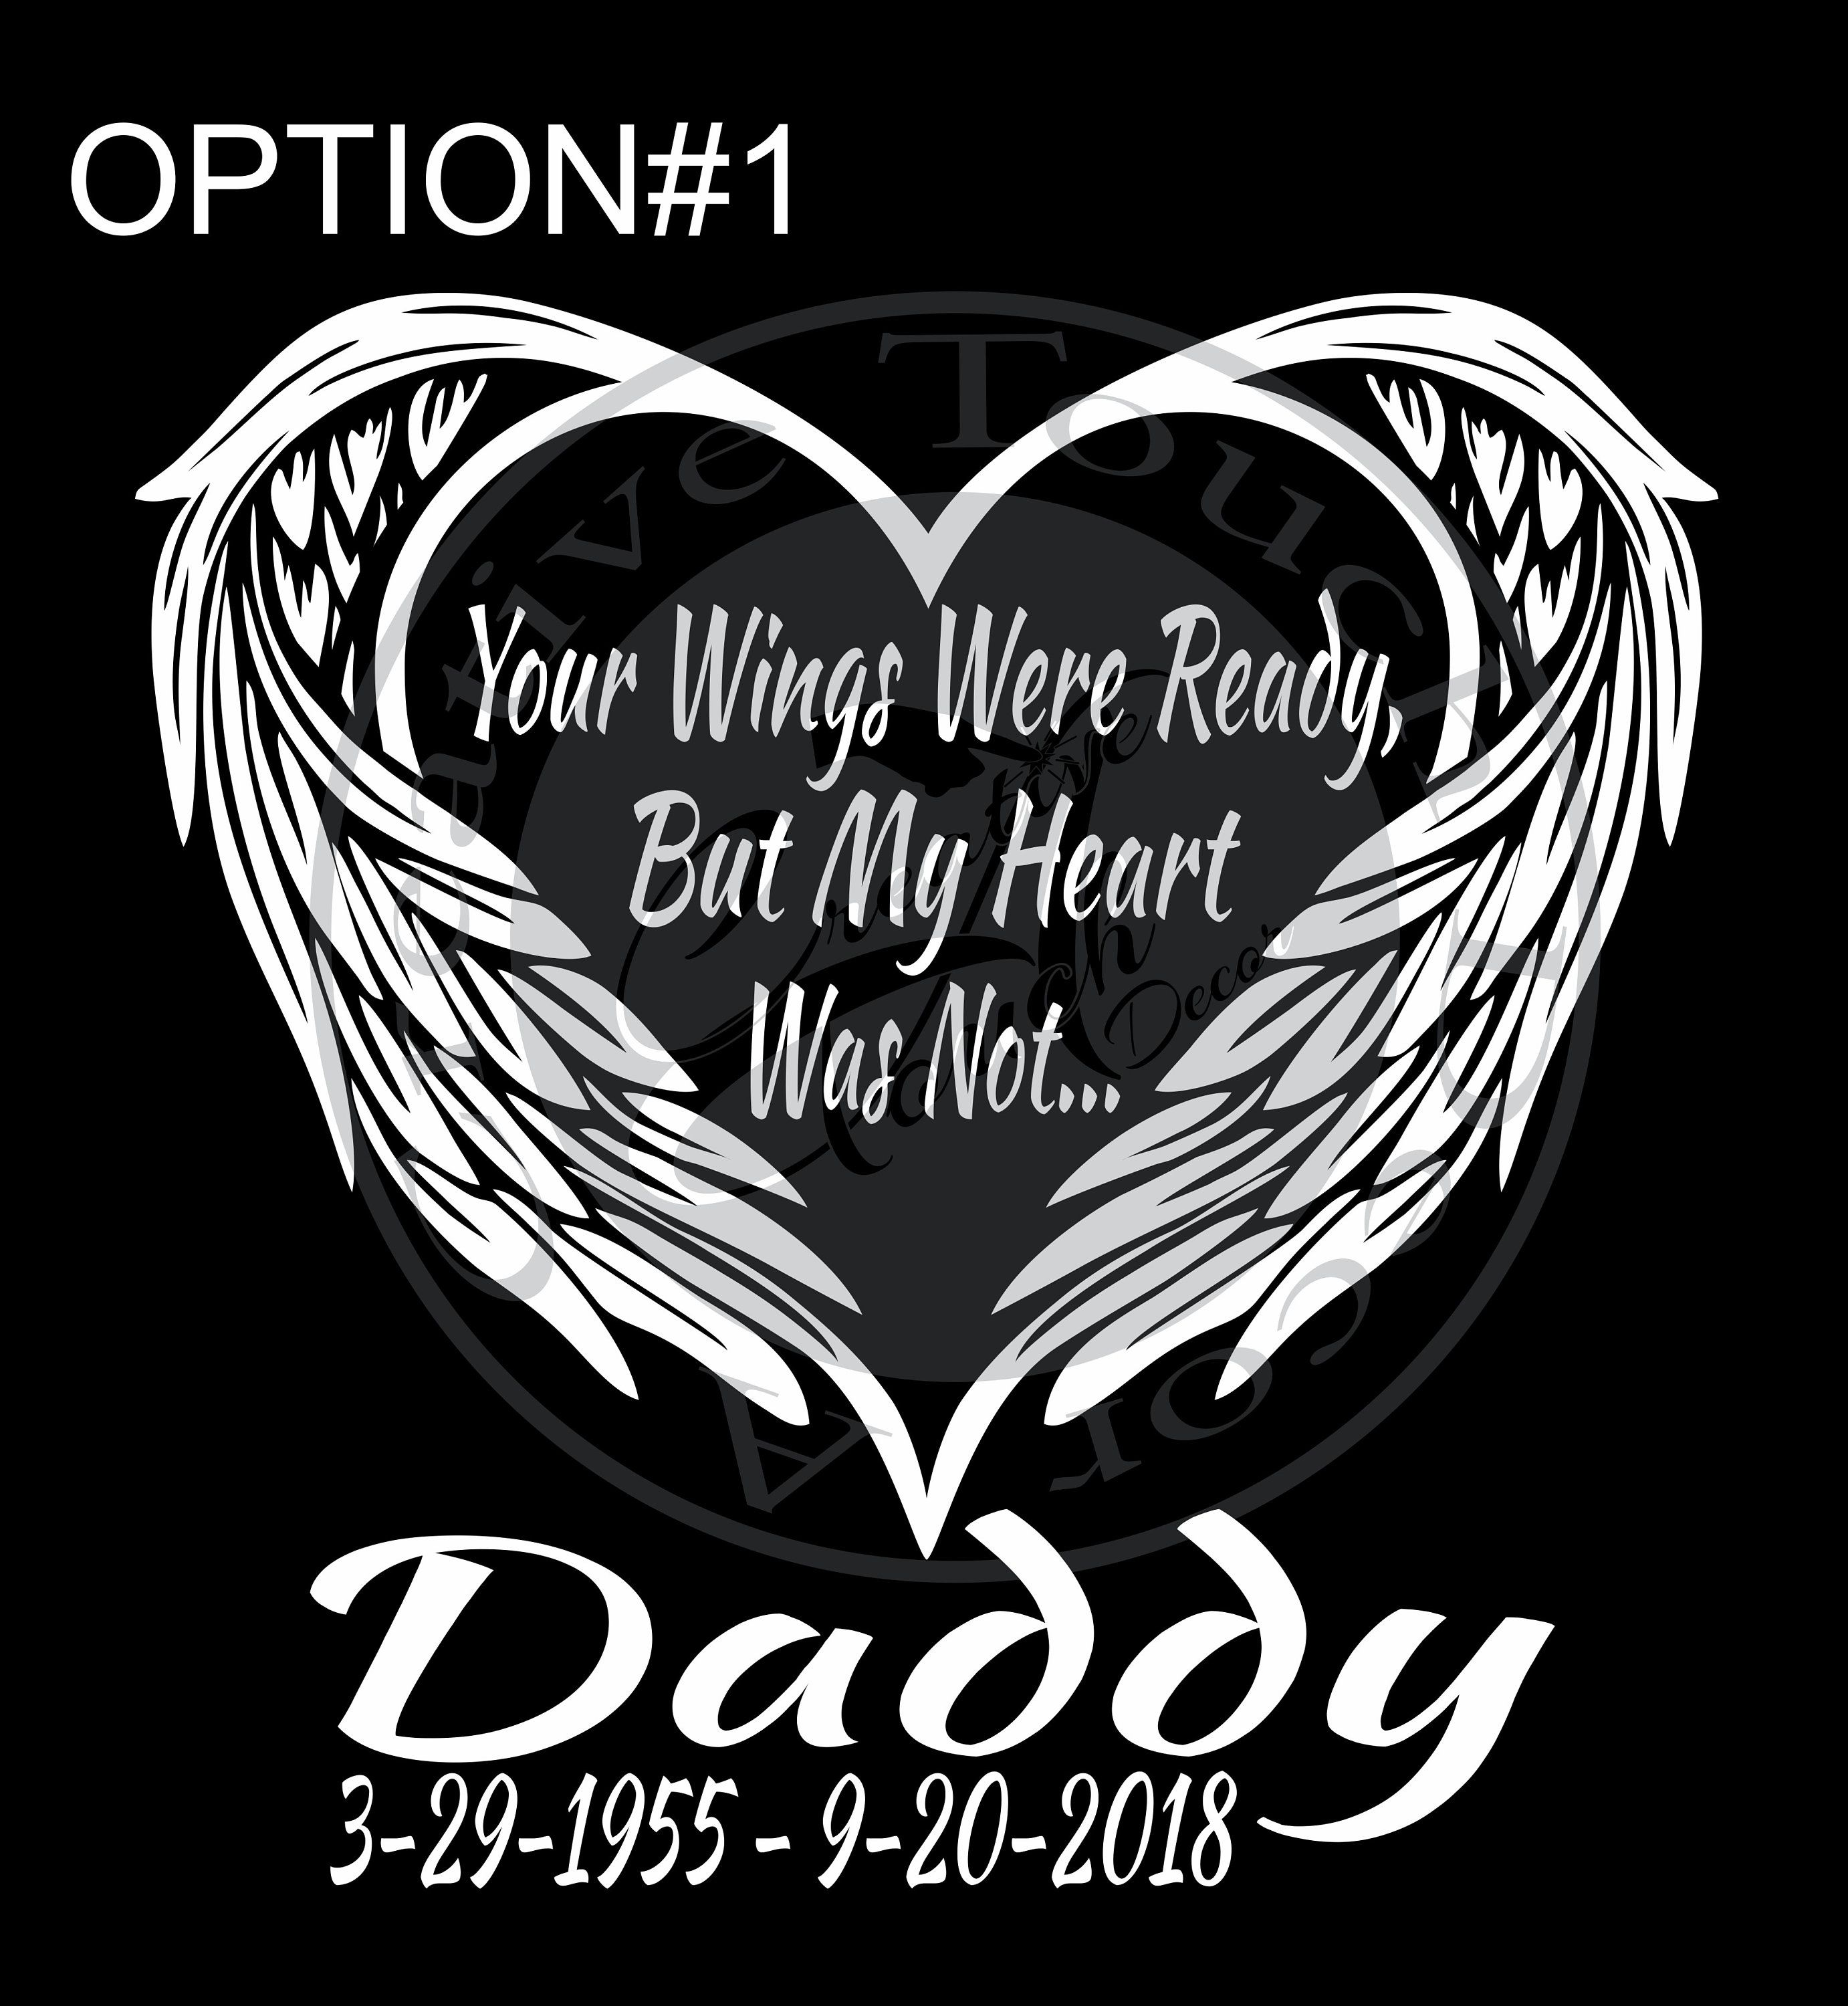 Memorial Sticker personalised NAME Your wings were ready but my heart was not